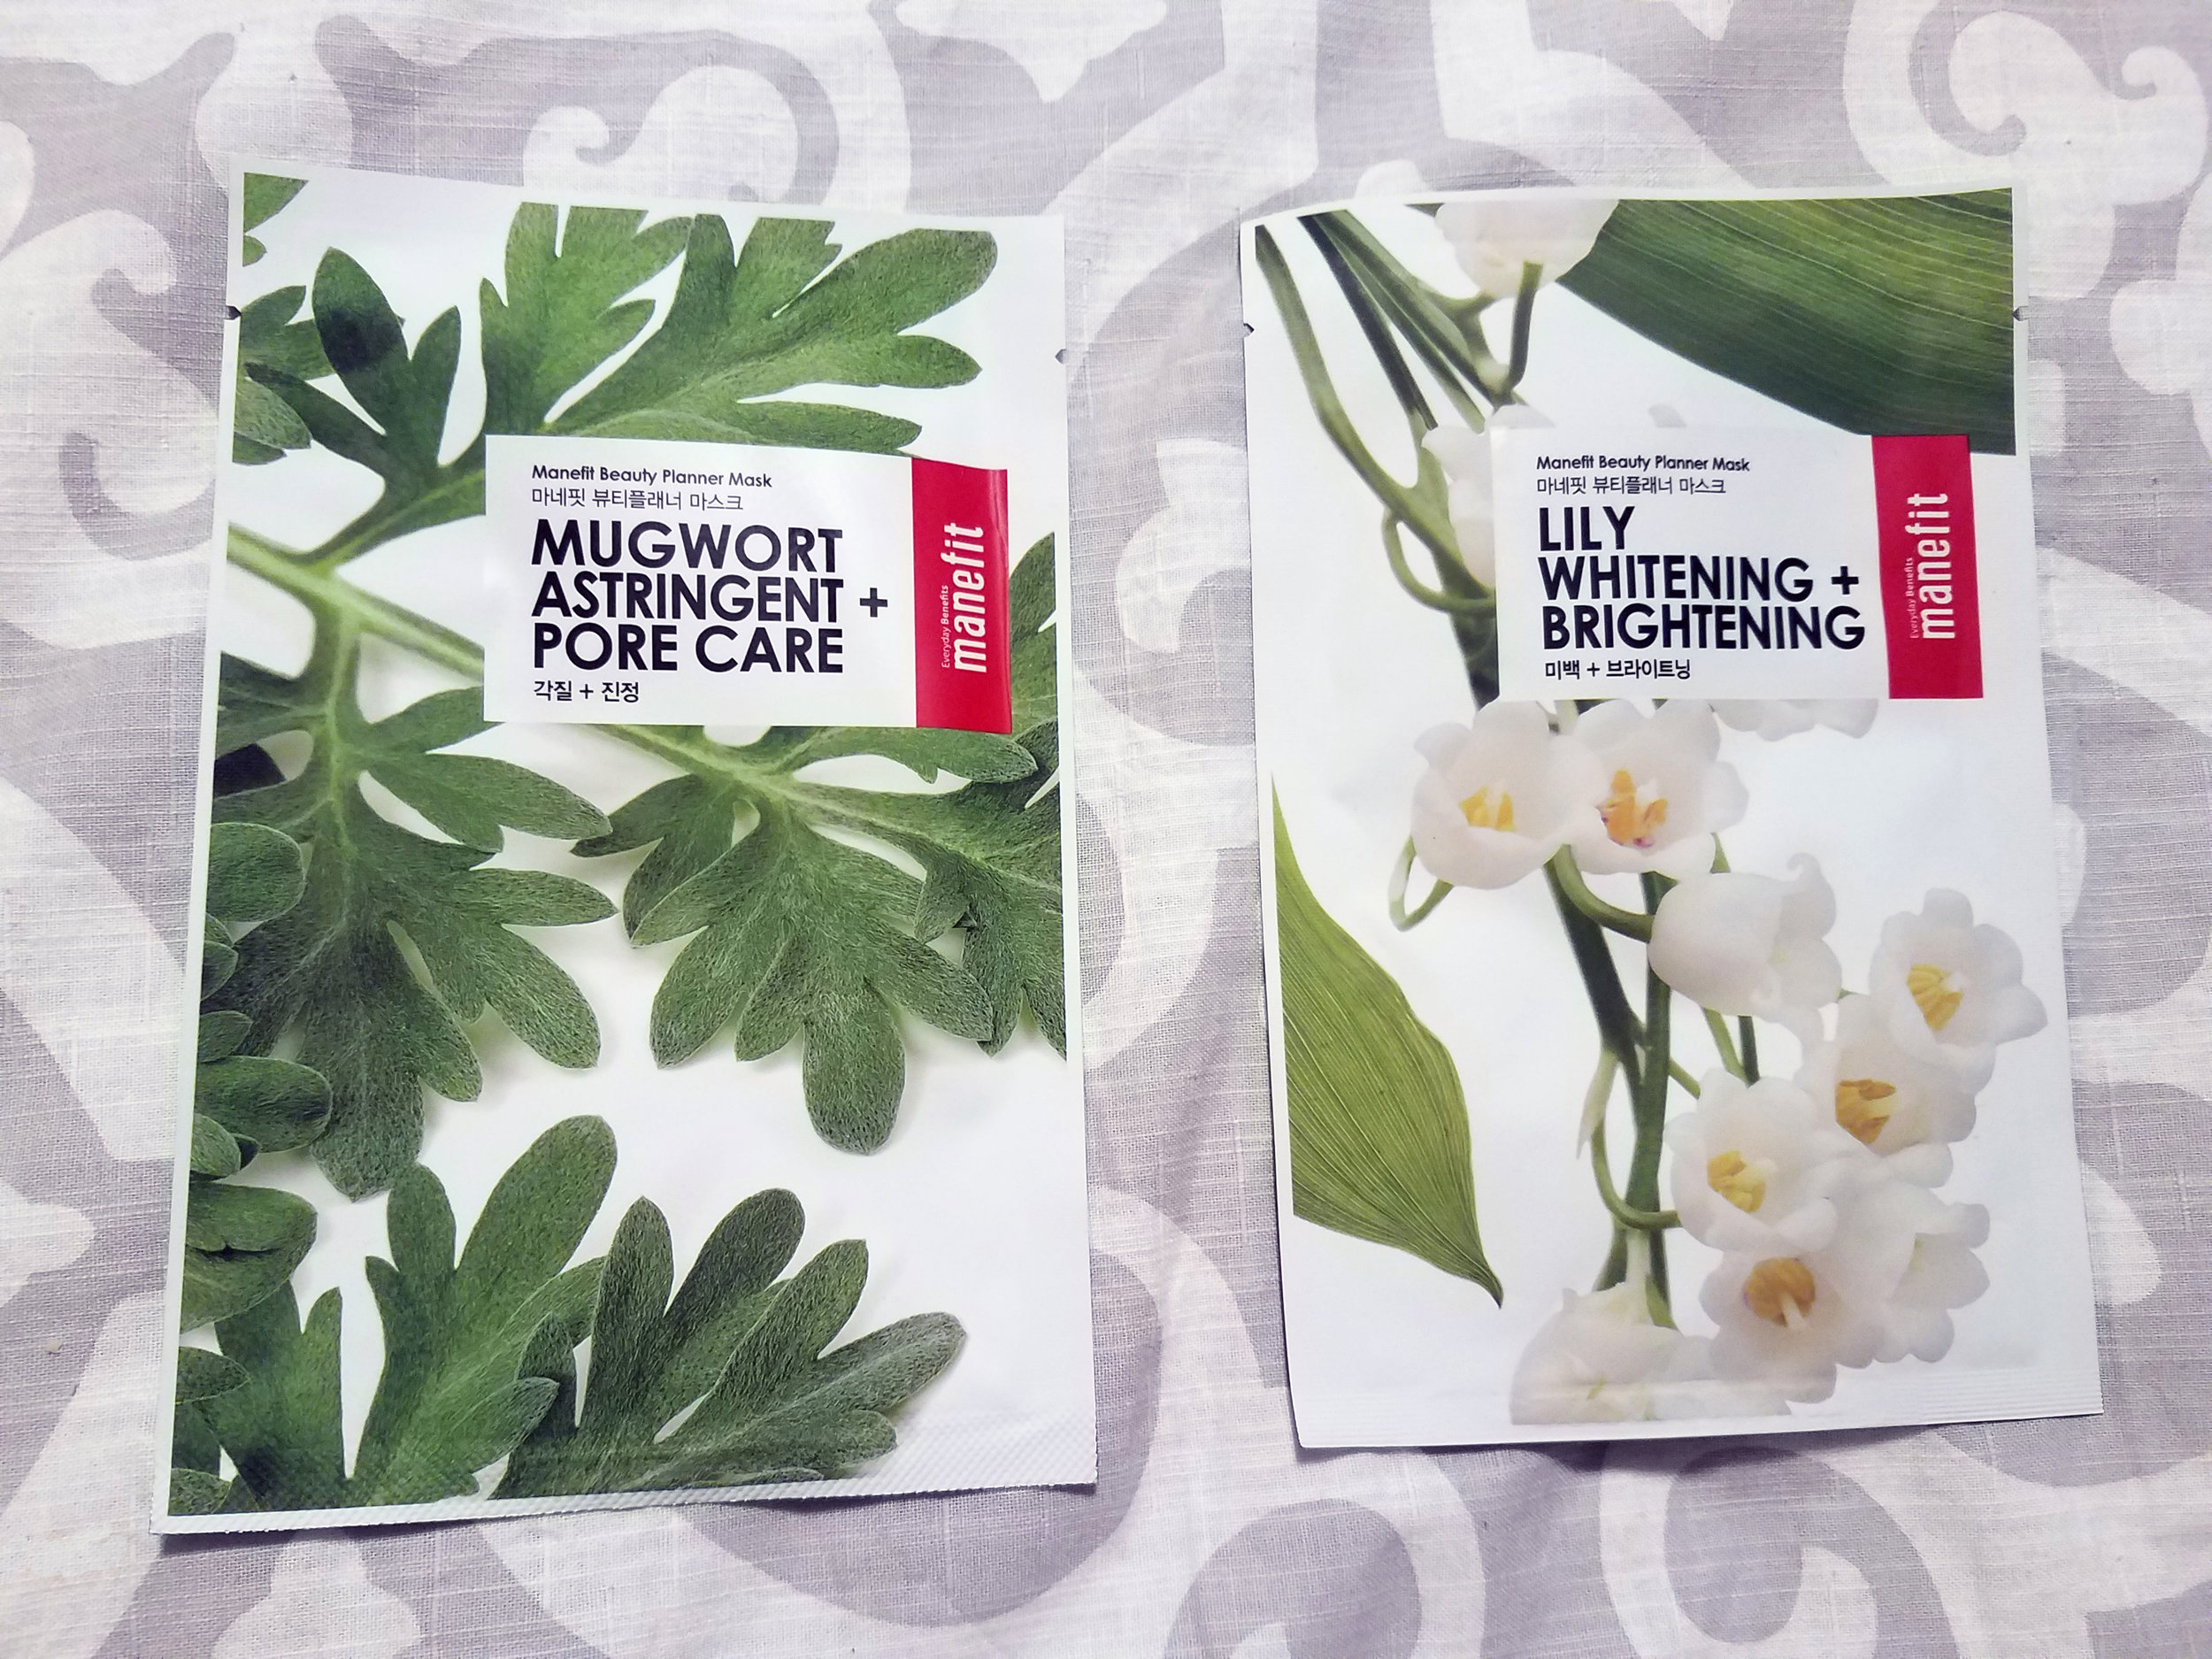 Manefit Beauty Planner Mask -Mugwort, Astringent + Pore Care and Beauty Planner Mask - Lily, Whitening + Brightening